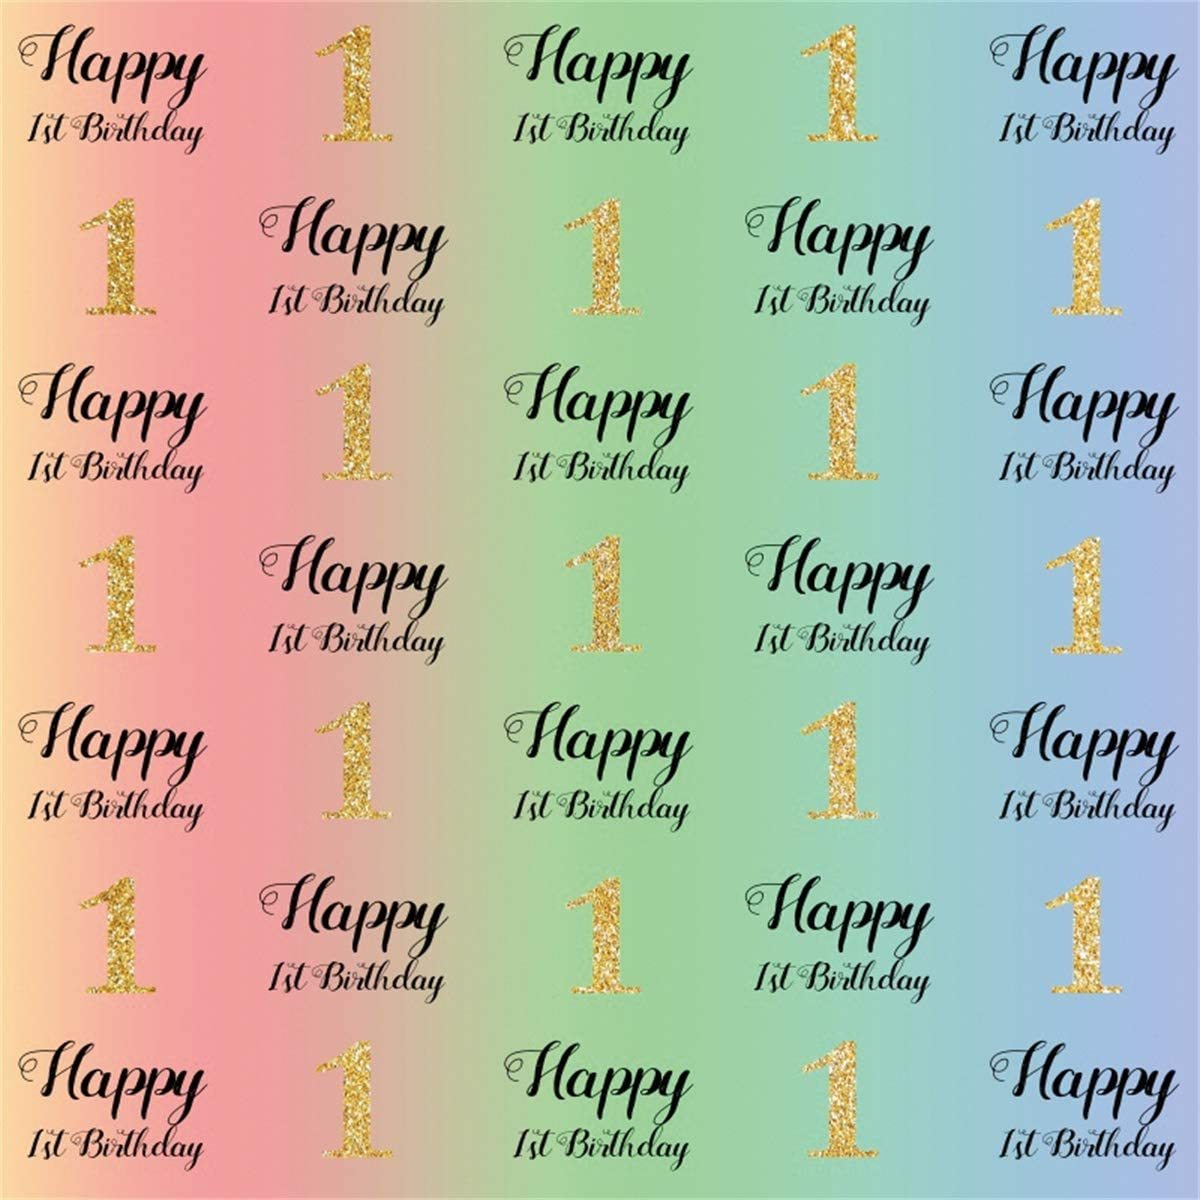 Yeele 10x10ft Golden One Year Birthday Backdrop Step and Repeat Happy 1st Birthday Photography Background Baby Infant Portrait Dessert Table Decoration Photobooth Props Digital Wallpaper